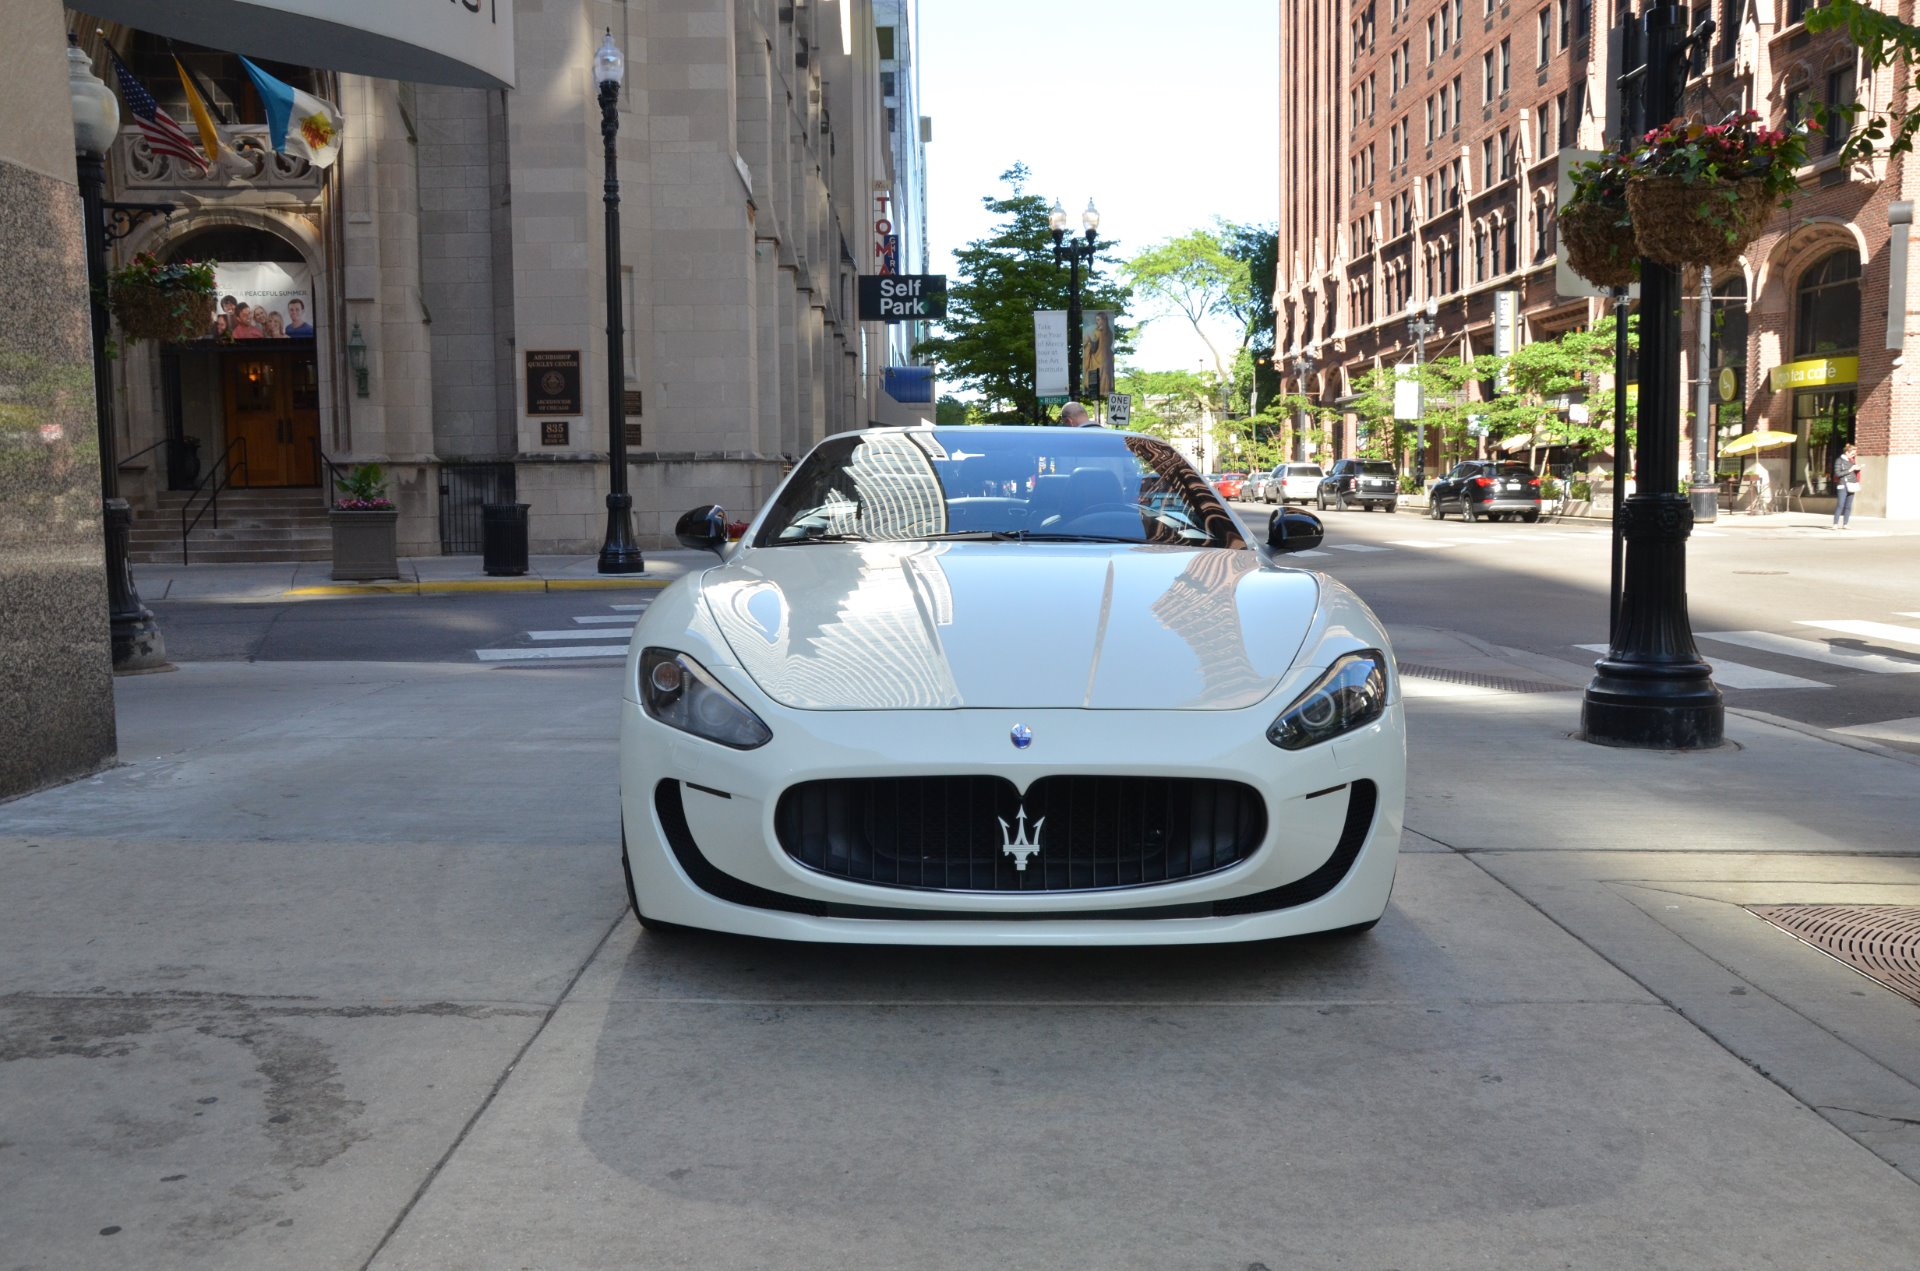 2011 maserati granturismo convertible stock 56238 for sale near chicago il il maserati dealer. Black Bedroom Furniture Sets. Home Design Ideas